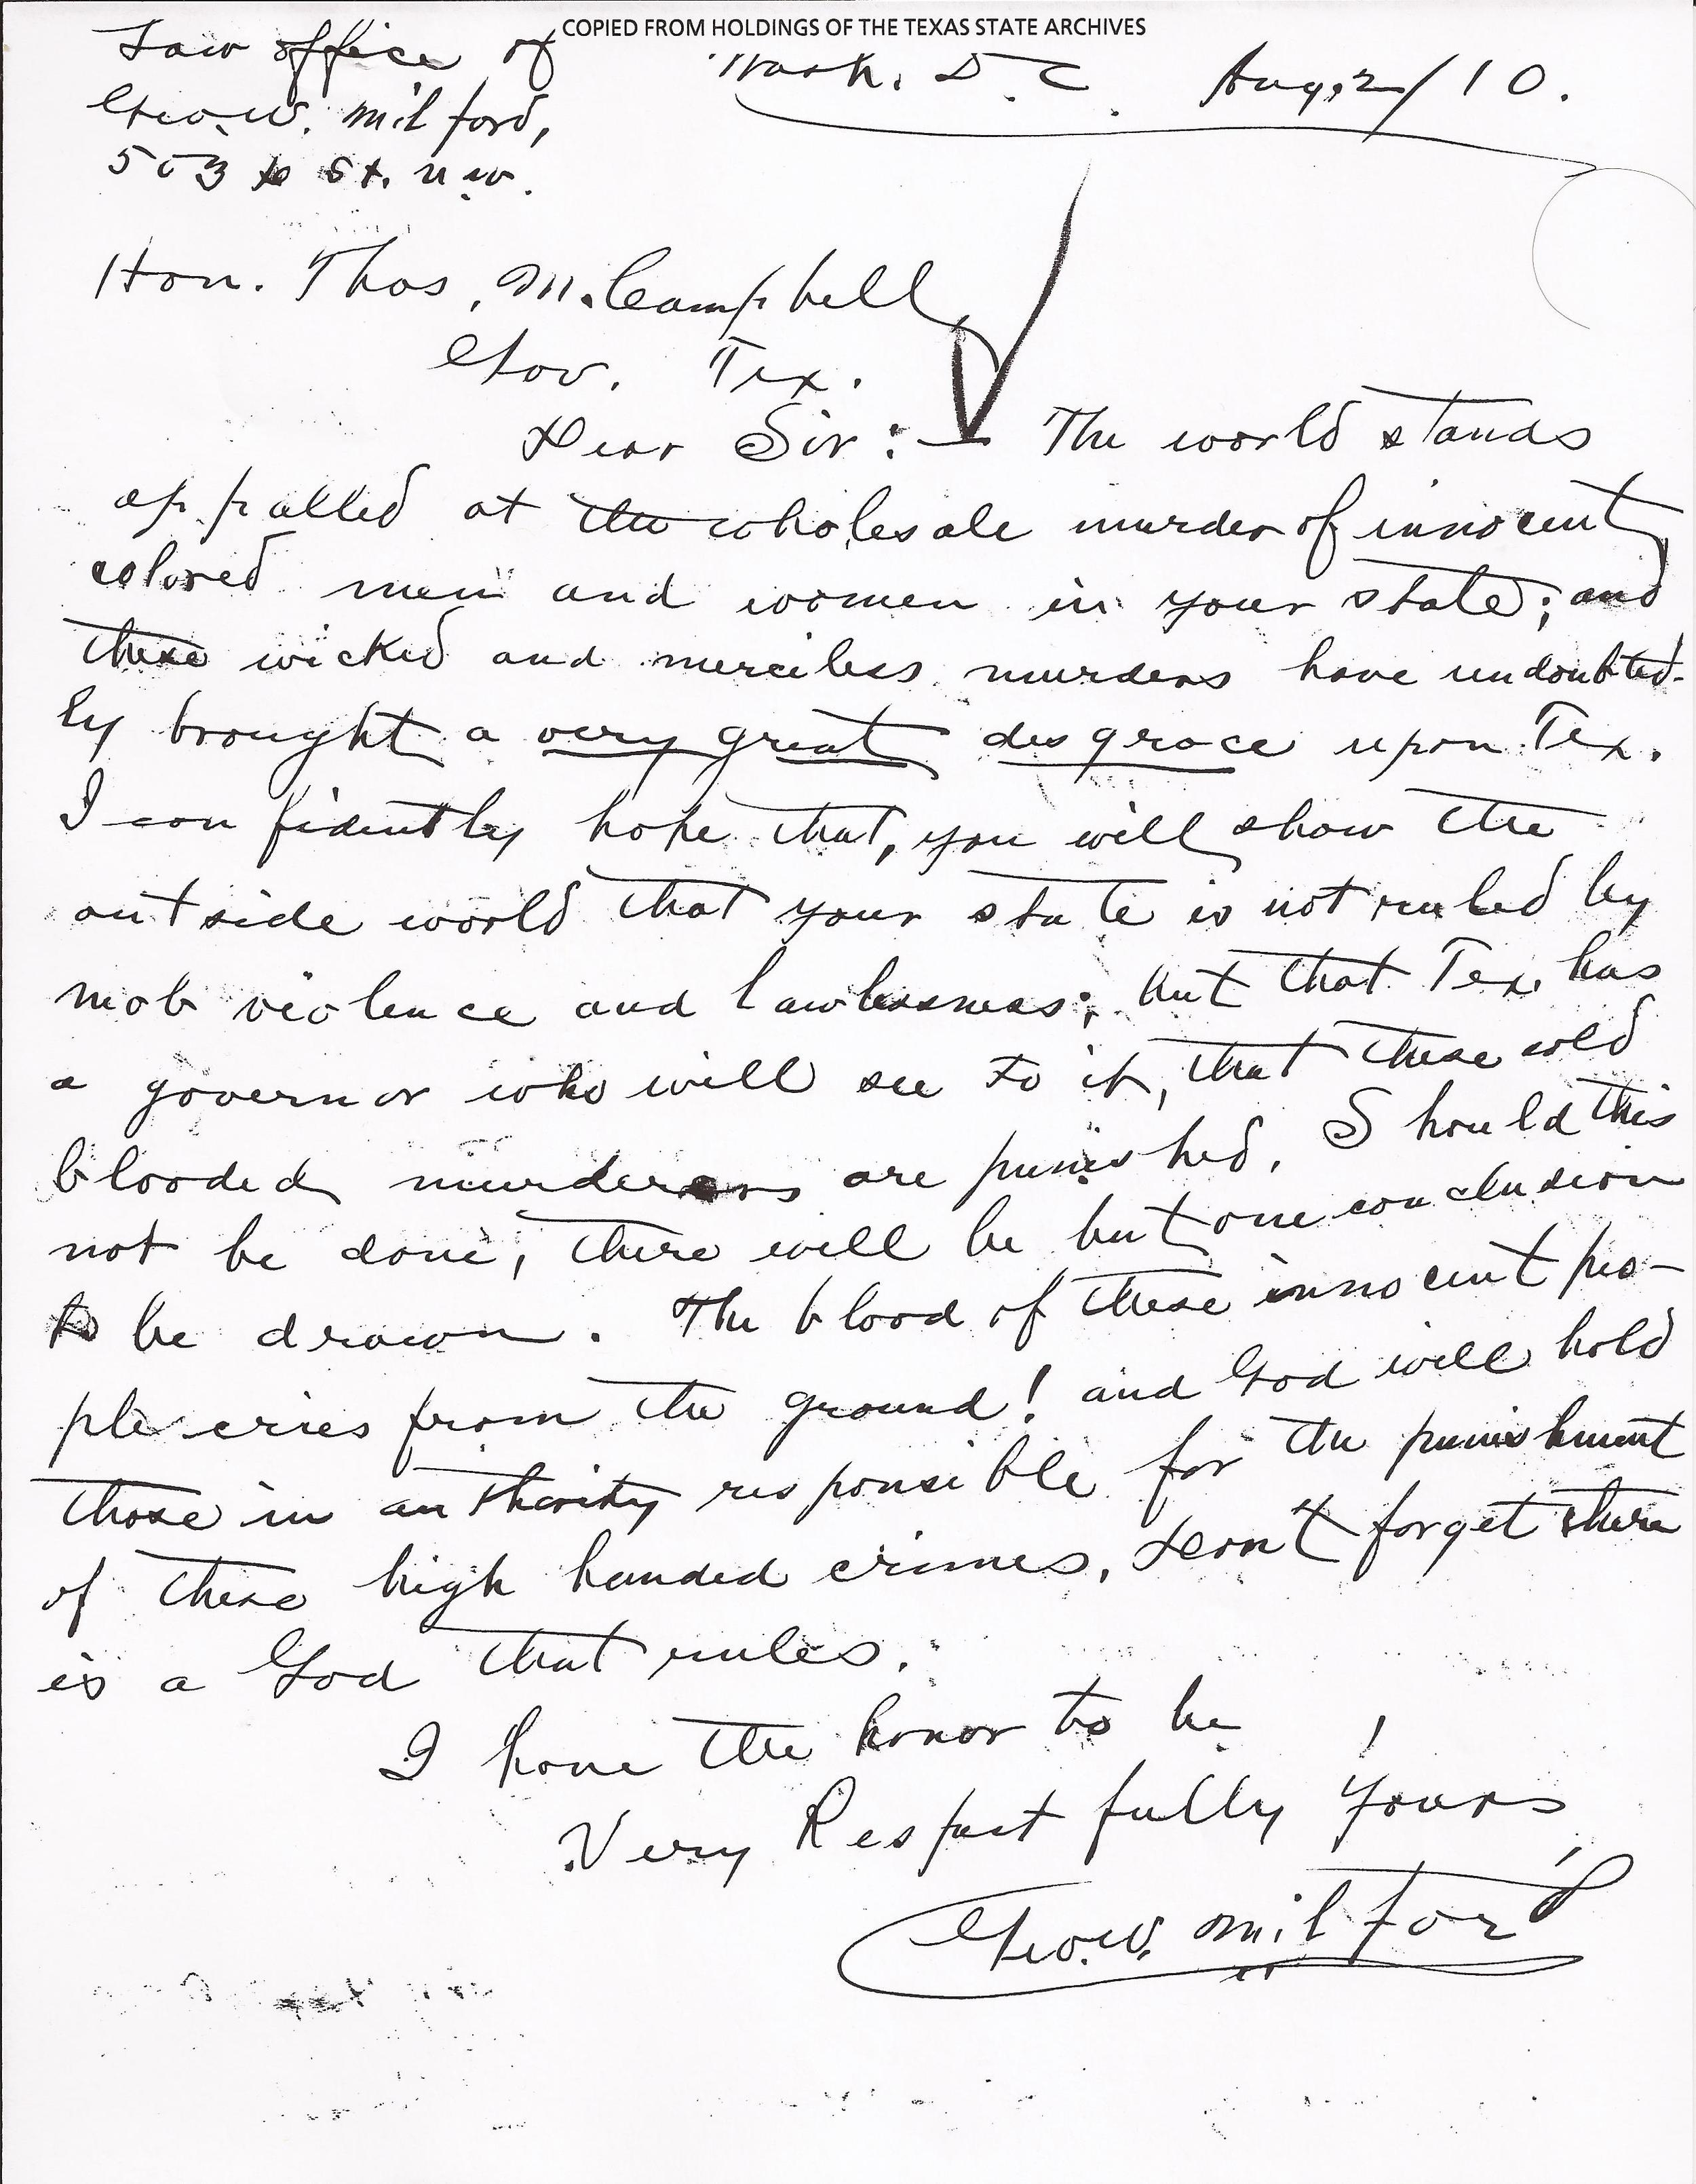 G. Milford to Governor Campbell, August 2, 1910 (Records, Texas Governor Thomas Mitchell Campbell.  Archives and Information Services Division, Texas State Library and Archives Commission)